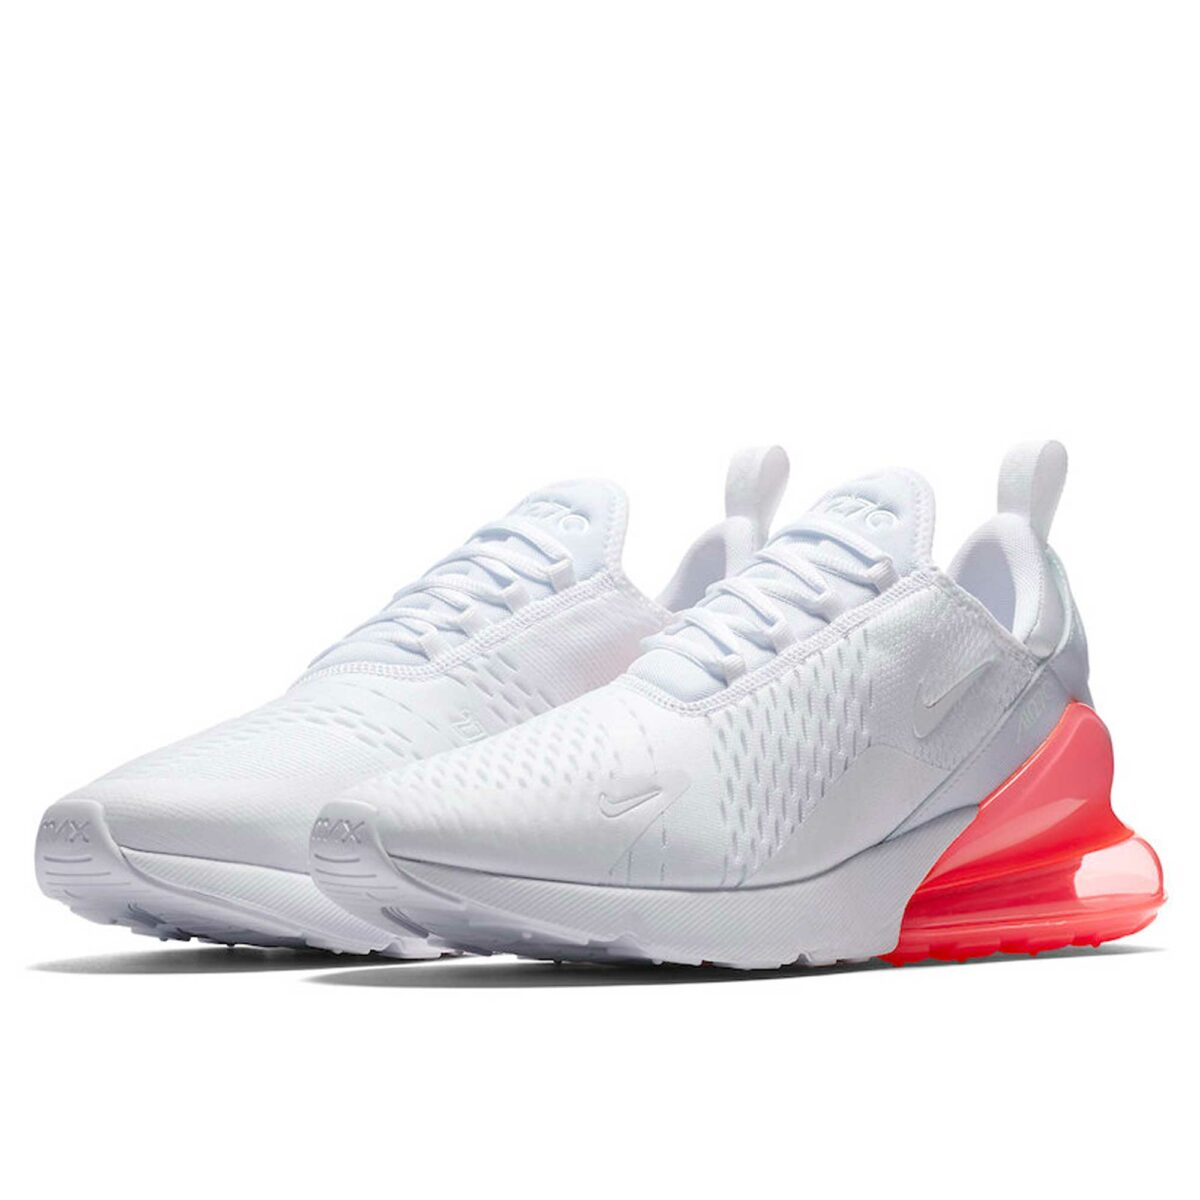 nike air max 270 white red AH8050_103d купить